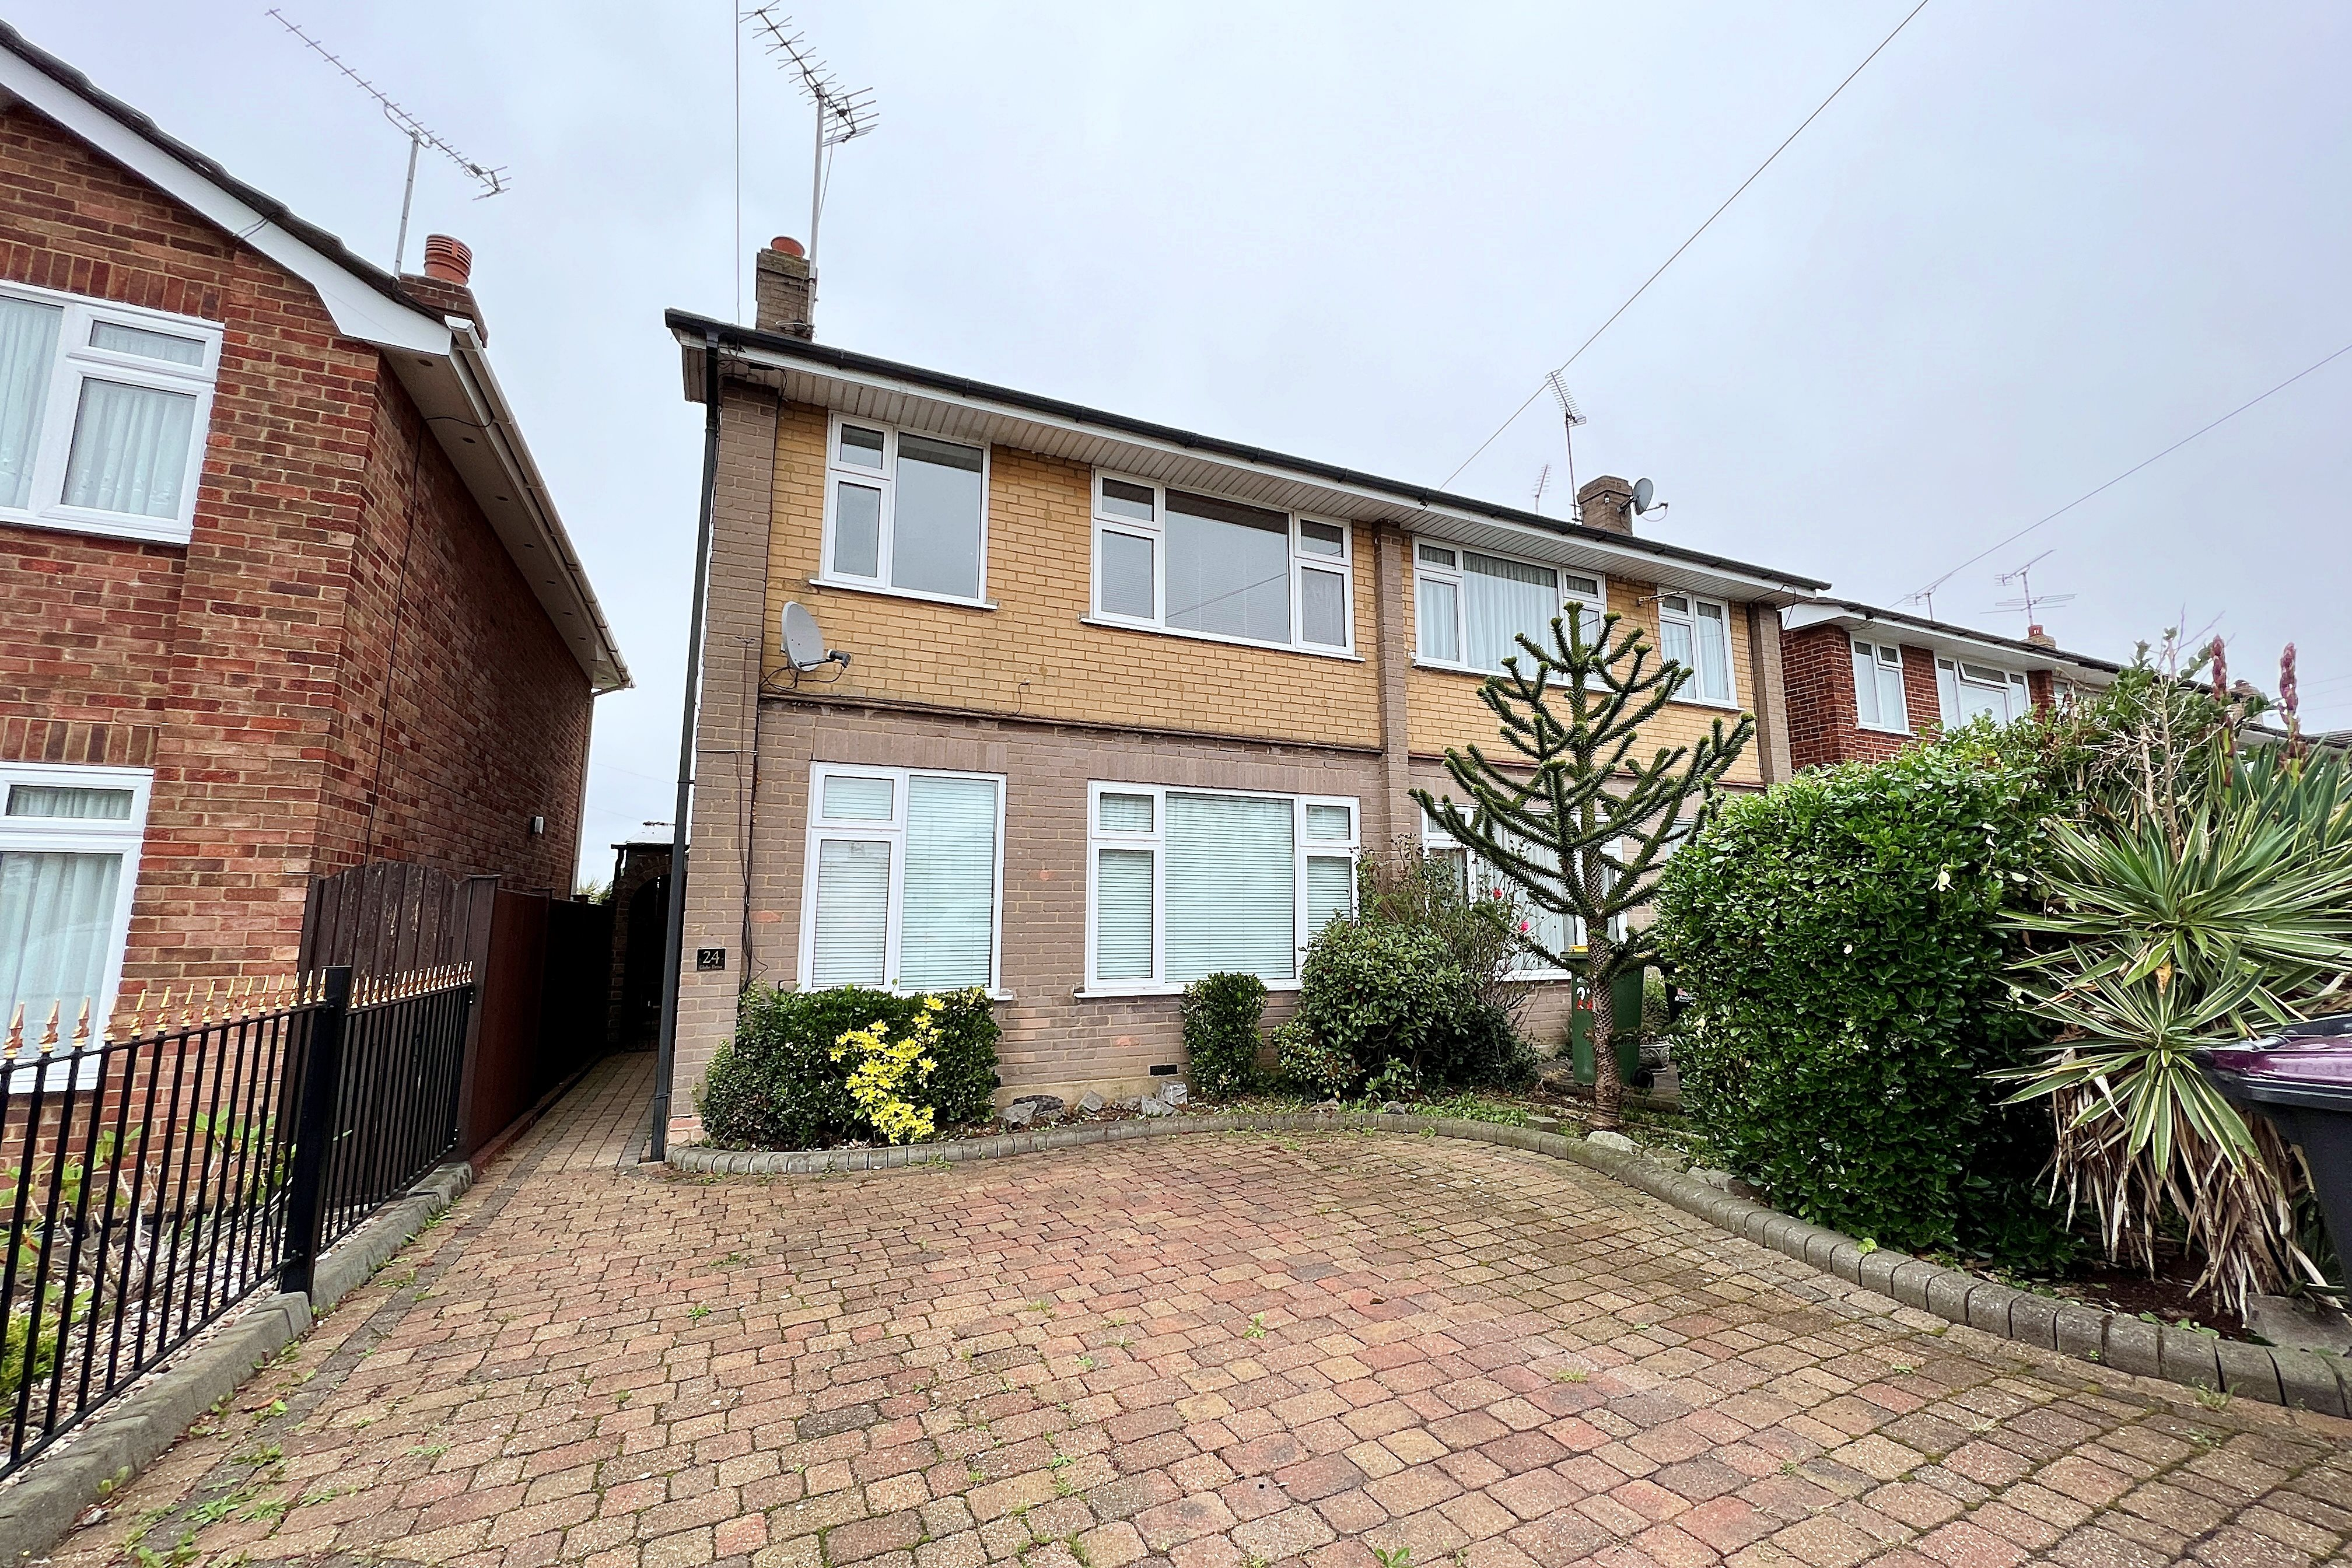 3 bed semi-detached house for sale in Glebe Drive, Rayleigh, SS6